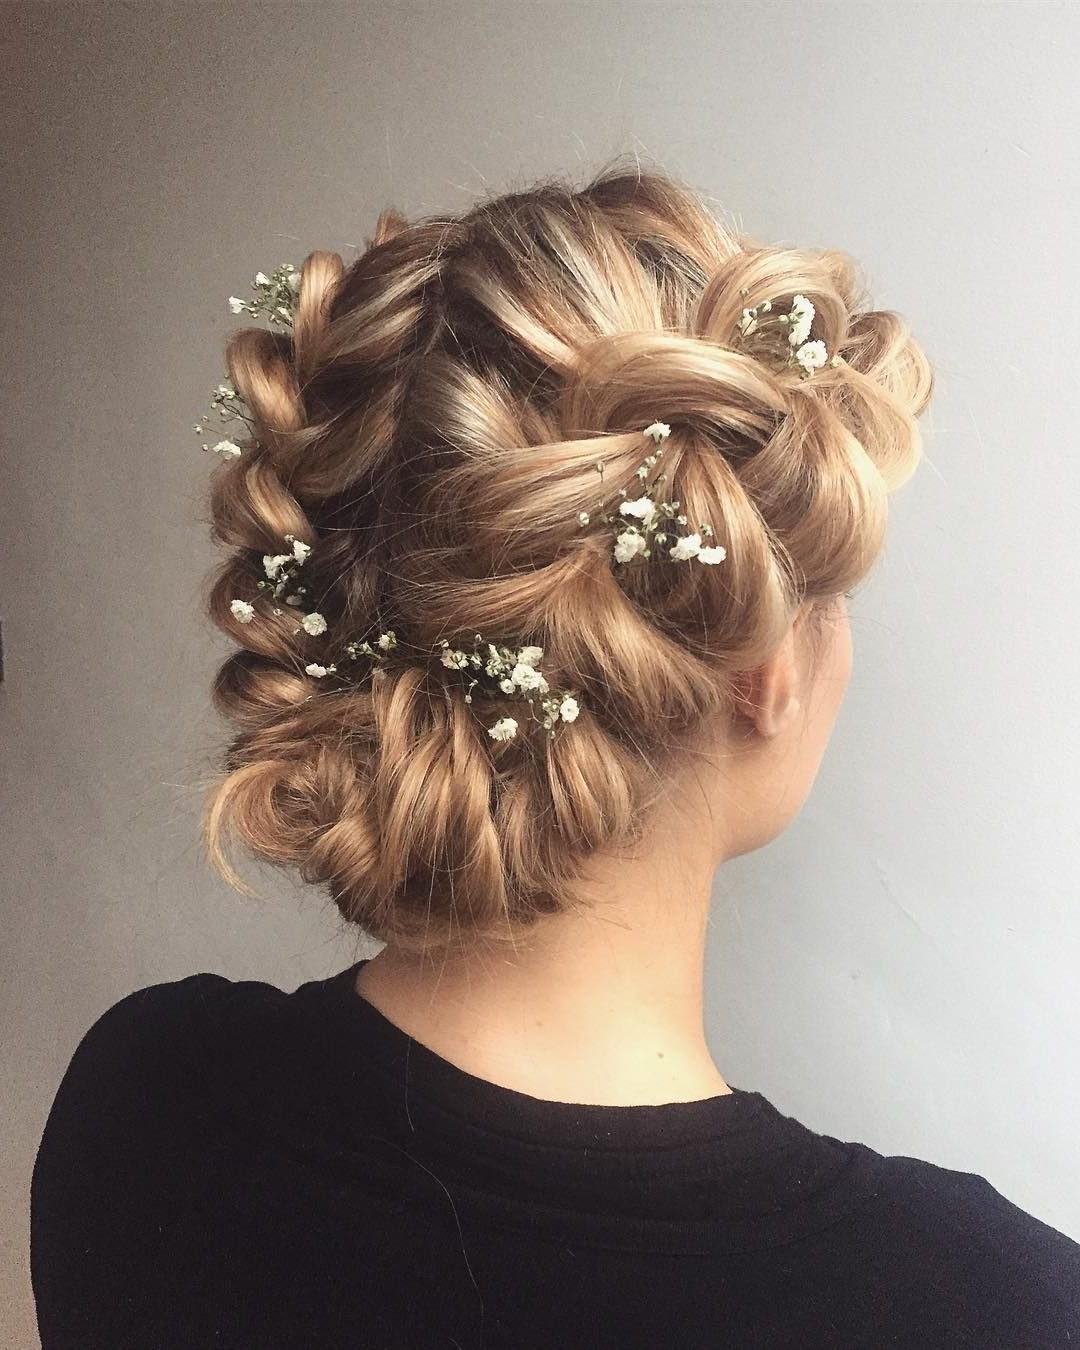 Bridal Crown Braid Hairstyle,textured Updo, Updo Wedding Throughout Favorite Messy Crown Braid Hairstyles (View 9 of 20)